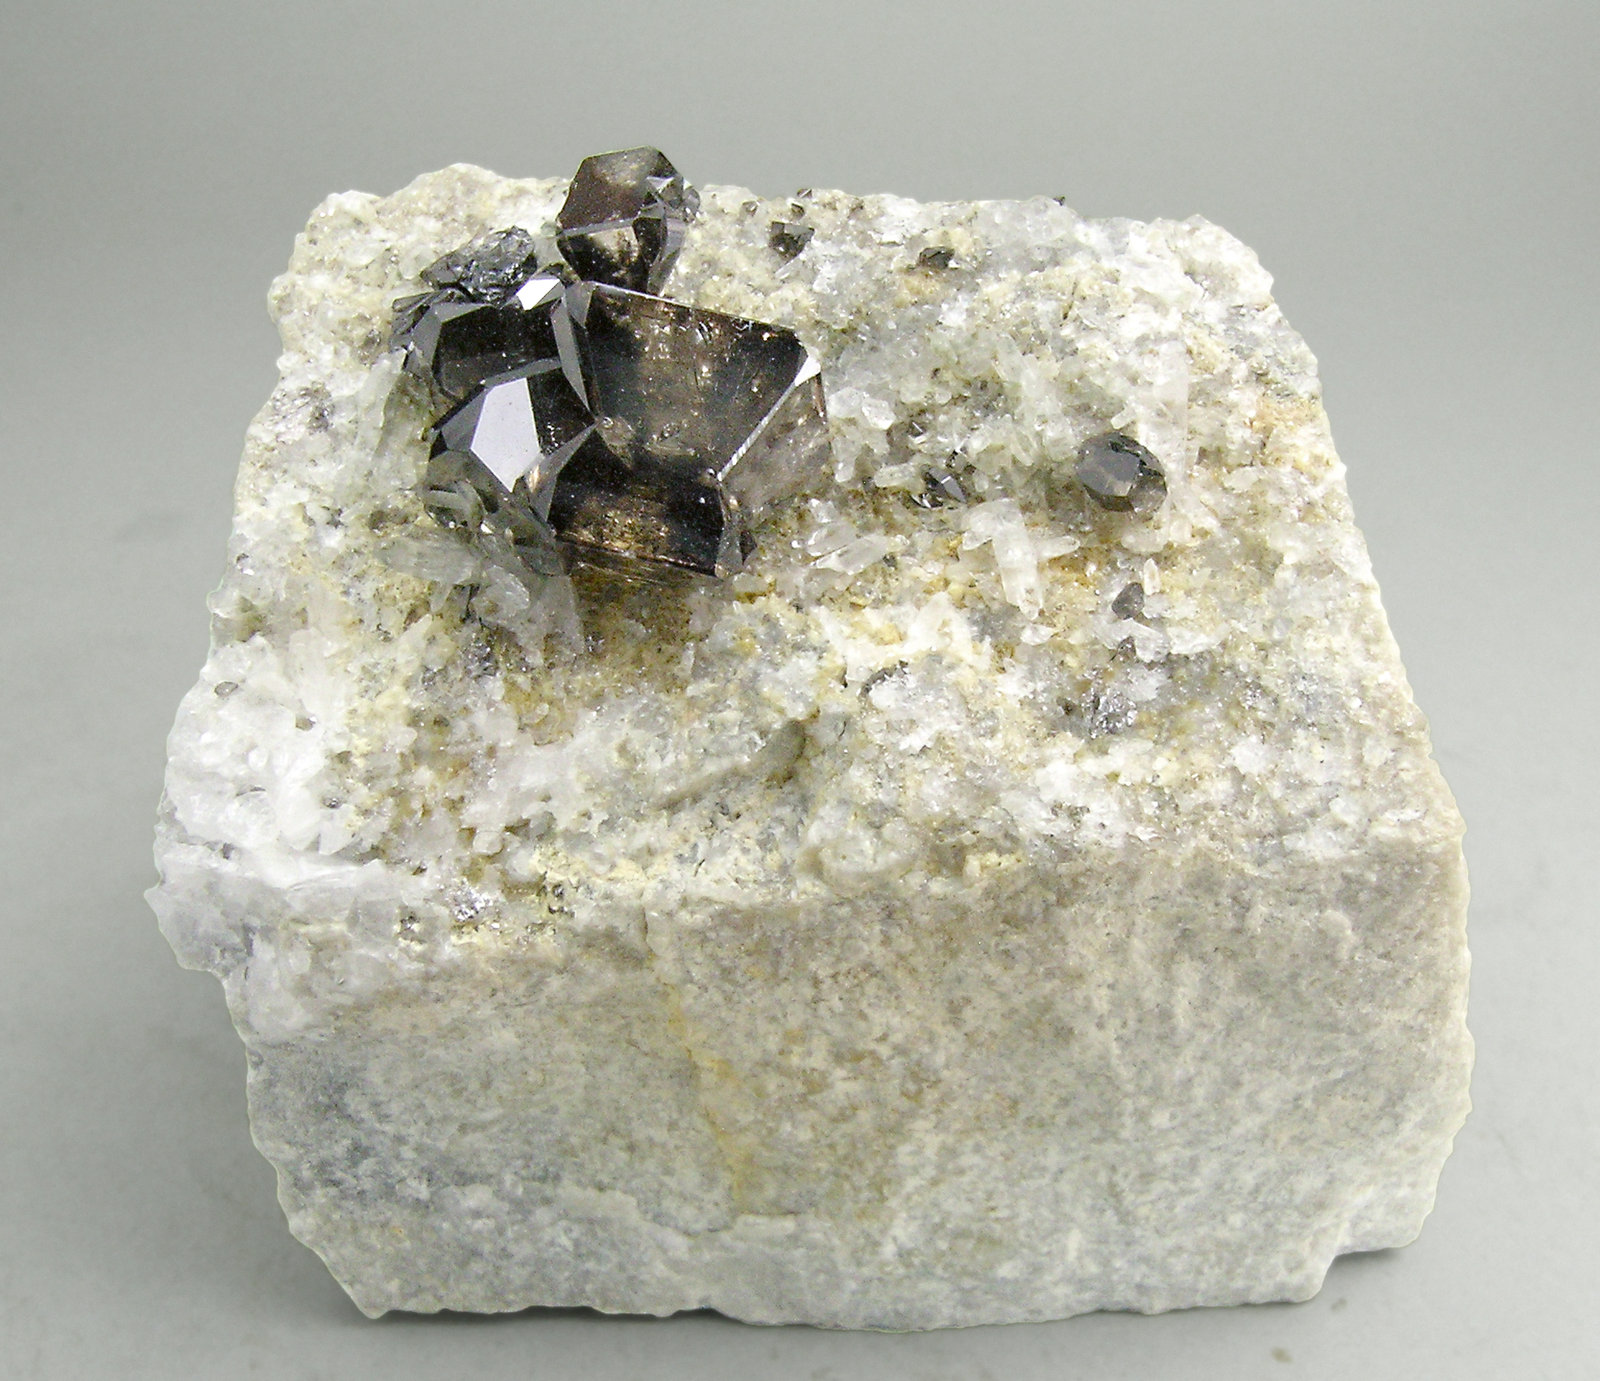 specimens/s_imagesN2/Cassiterite-AM47N2f.jpg